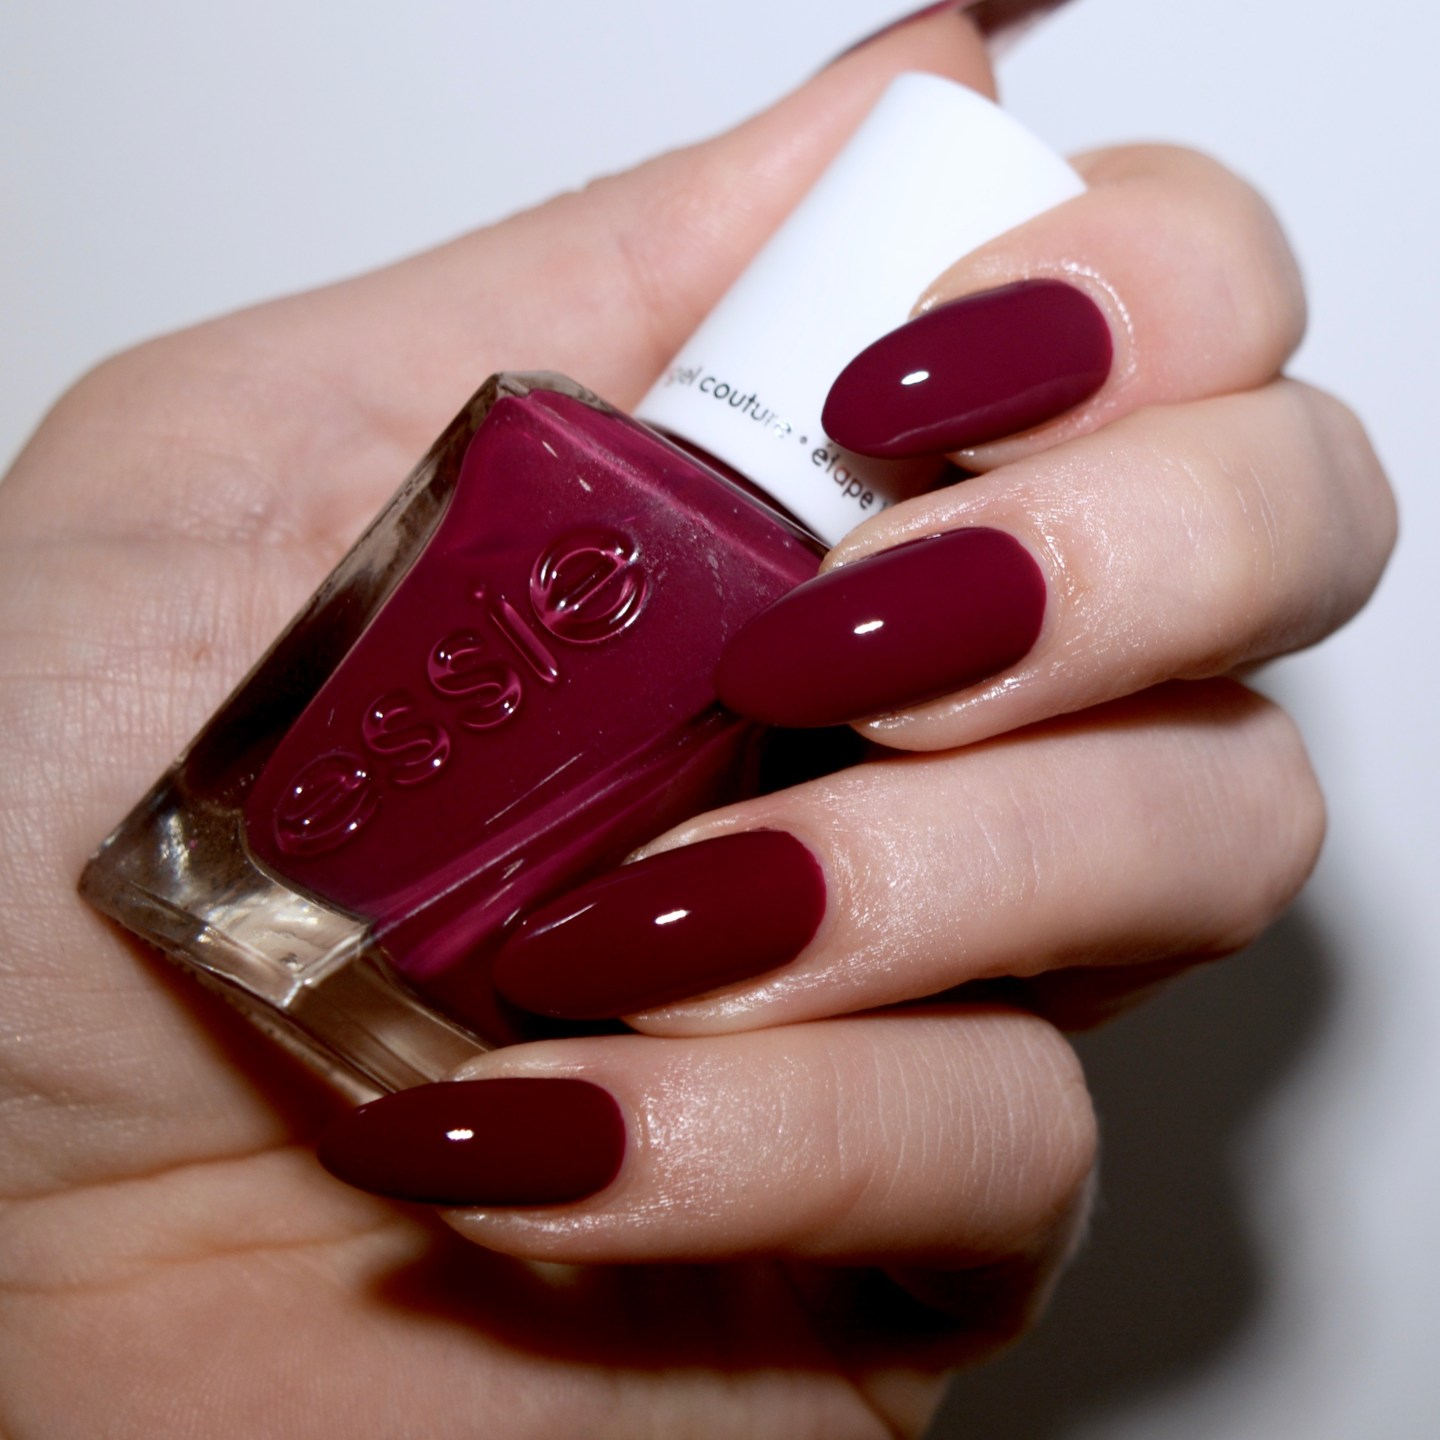 Essie Bridal 2017 'Berry In Love'